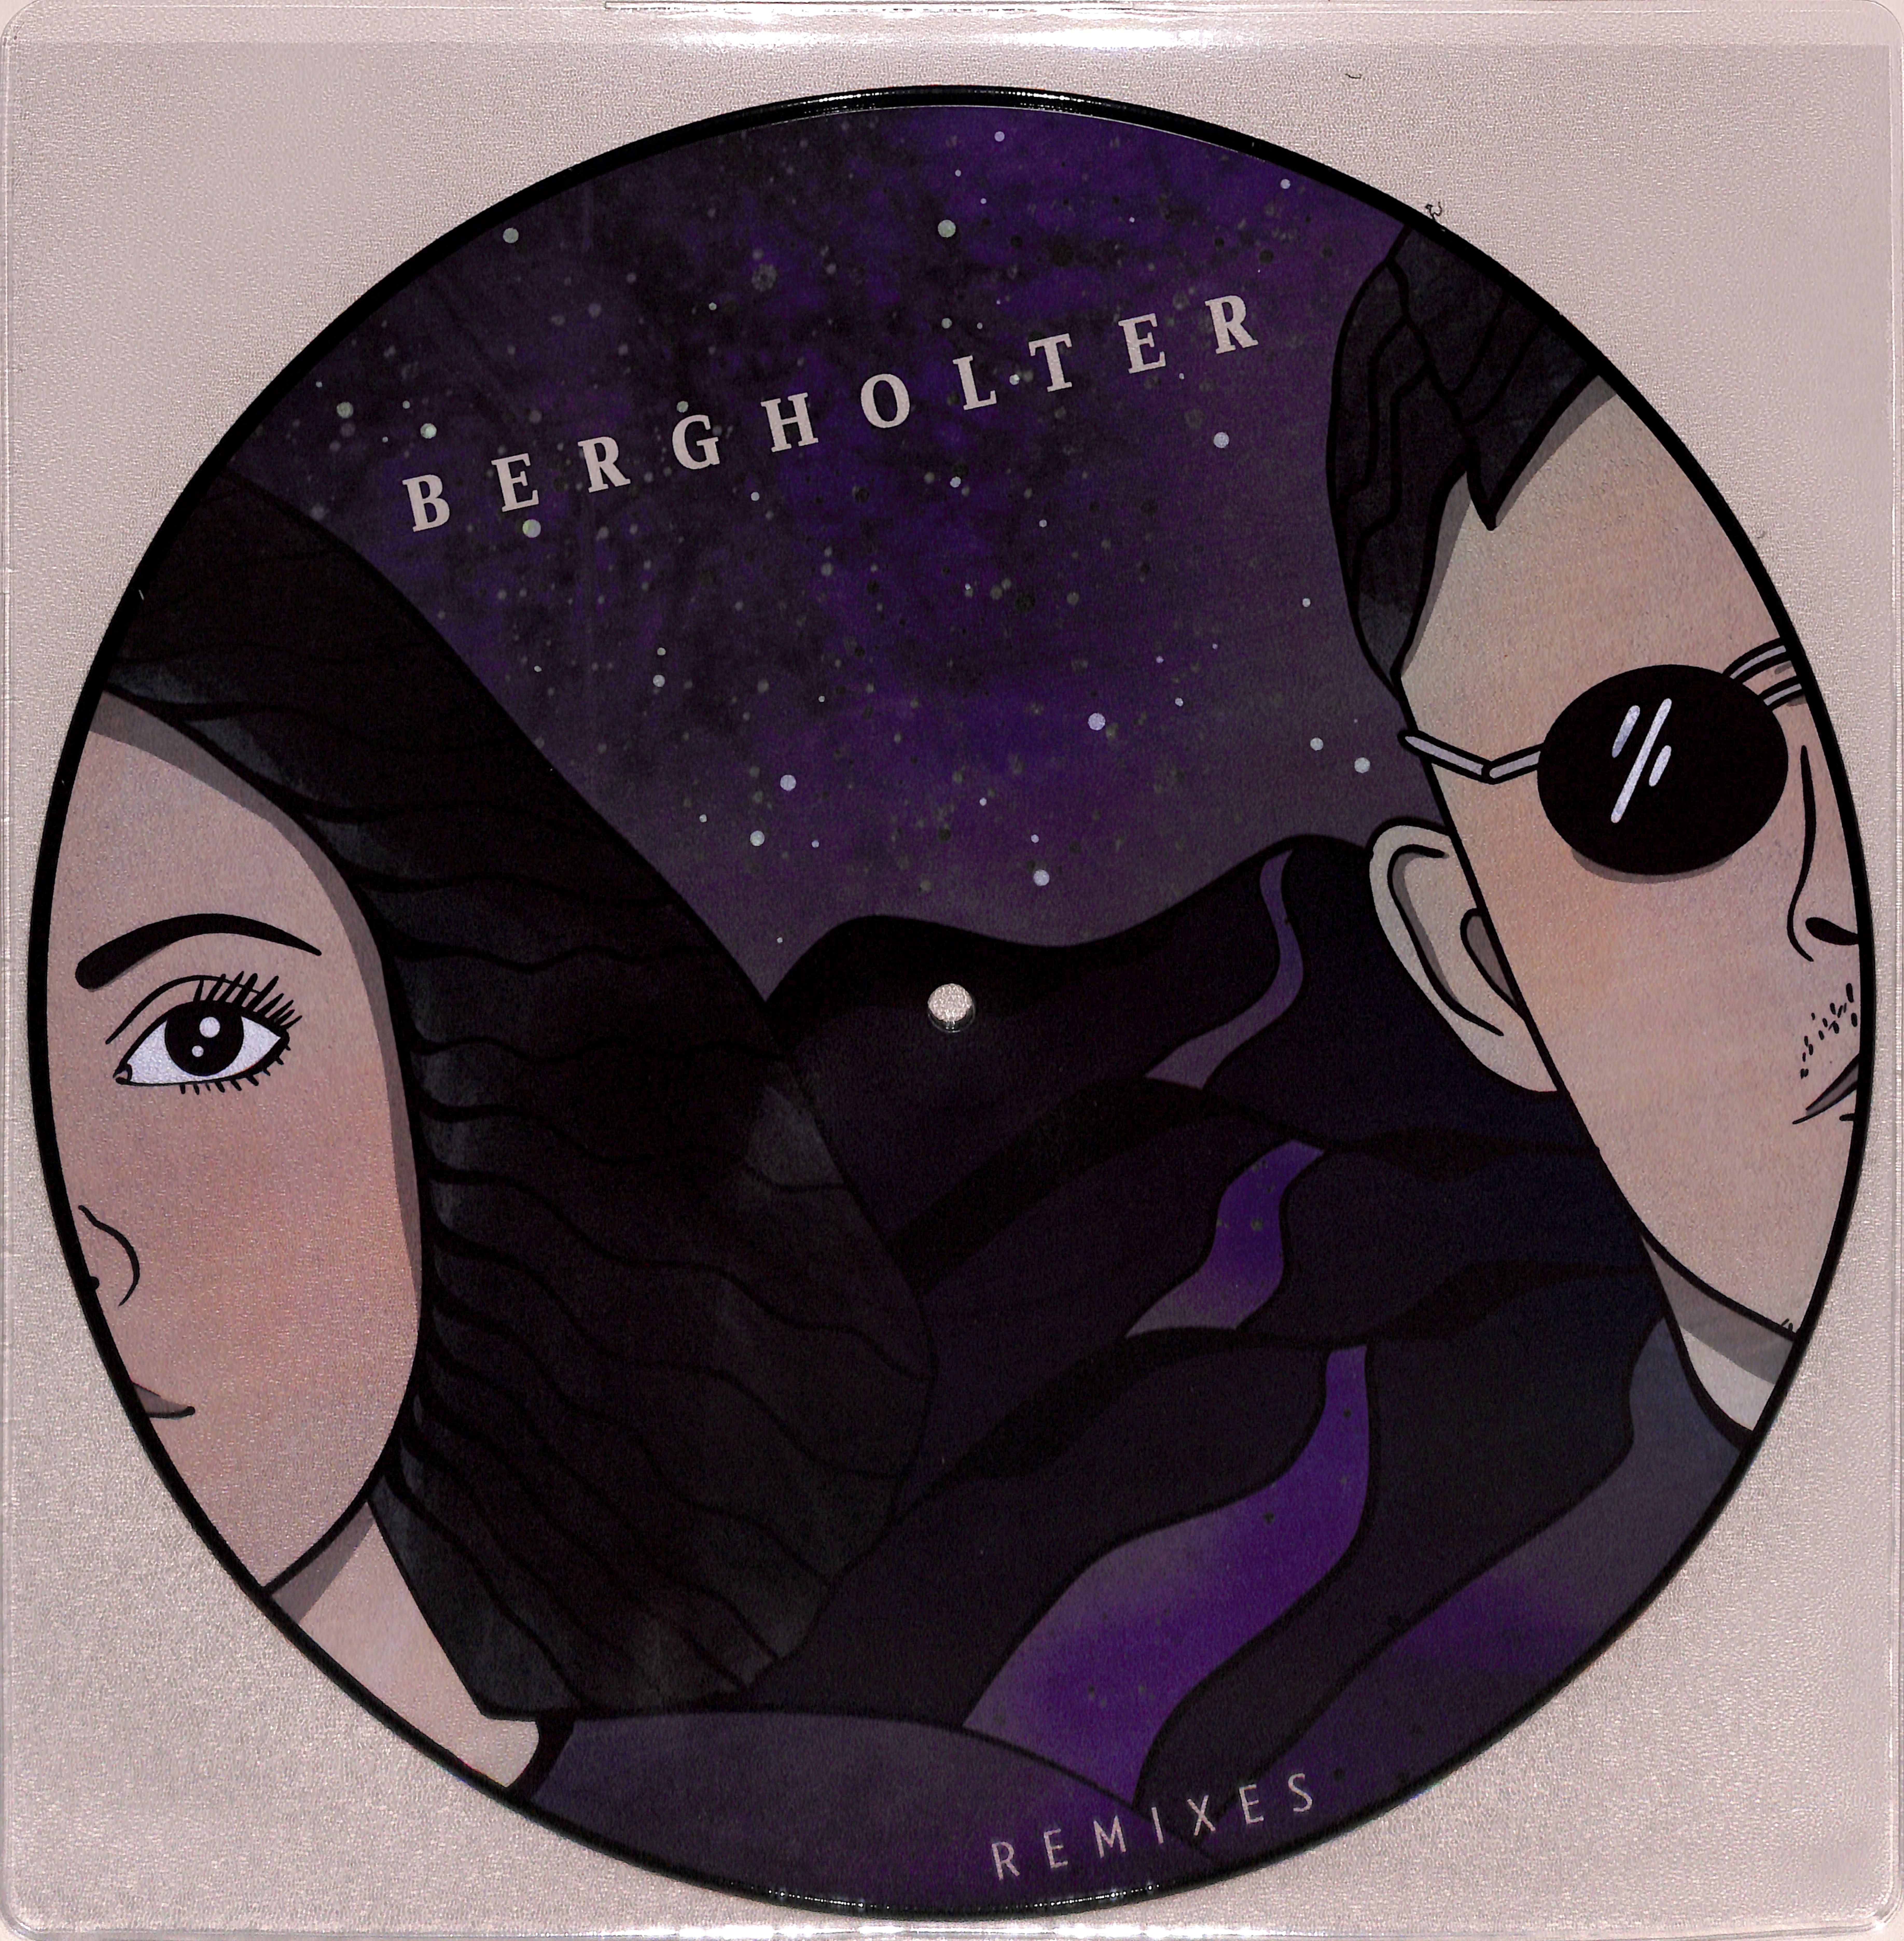 Bergholter - LIPS DONT CRY RMXS